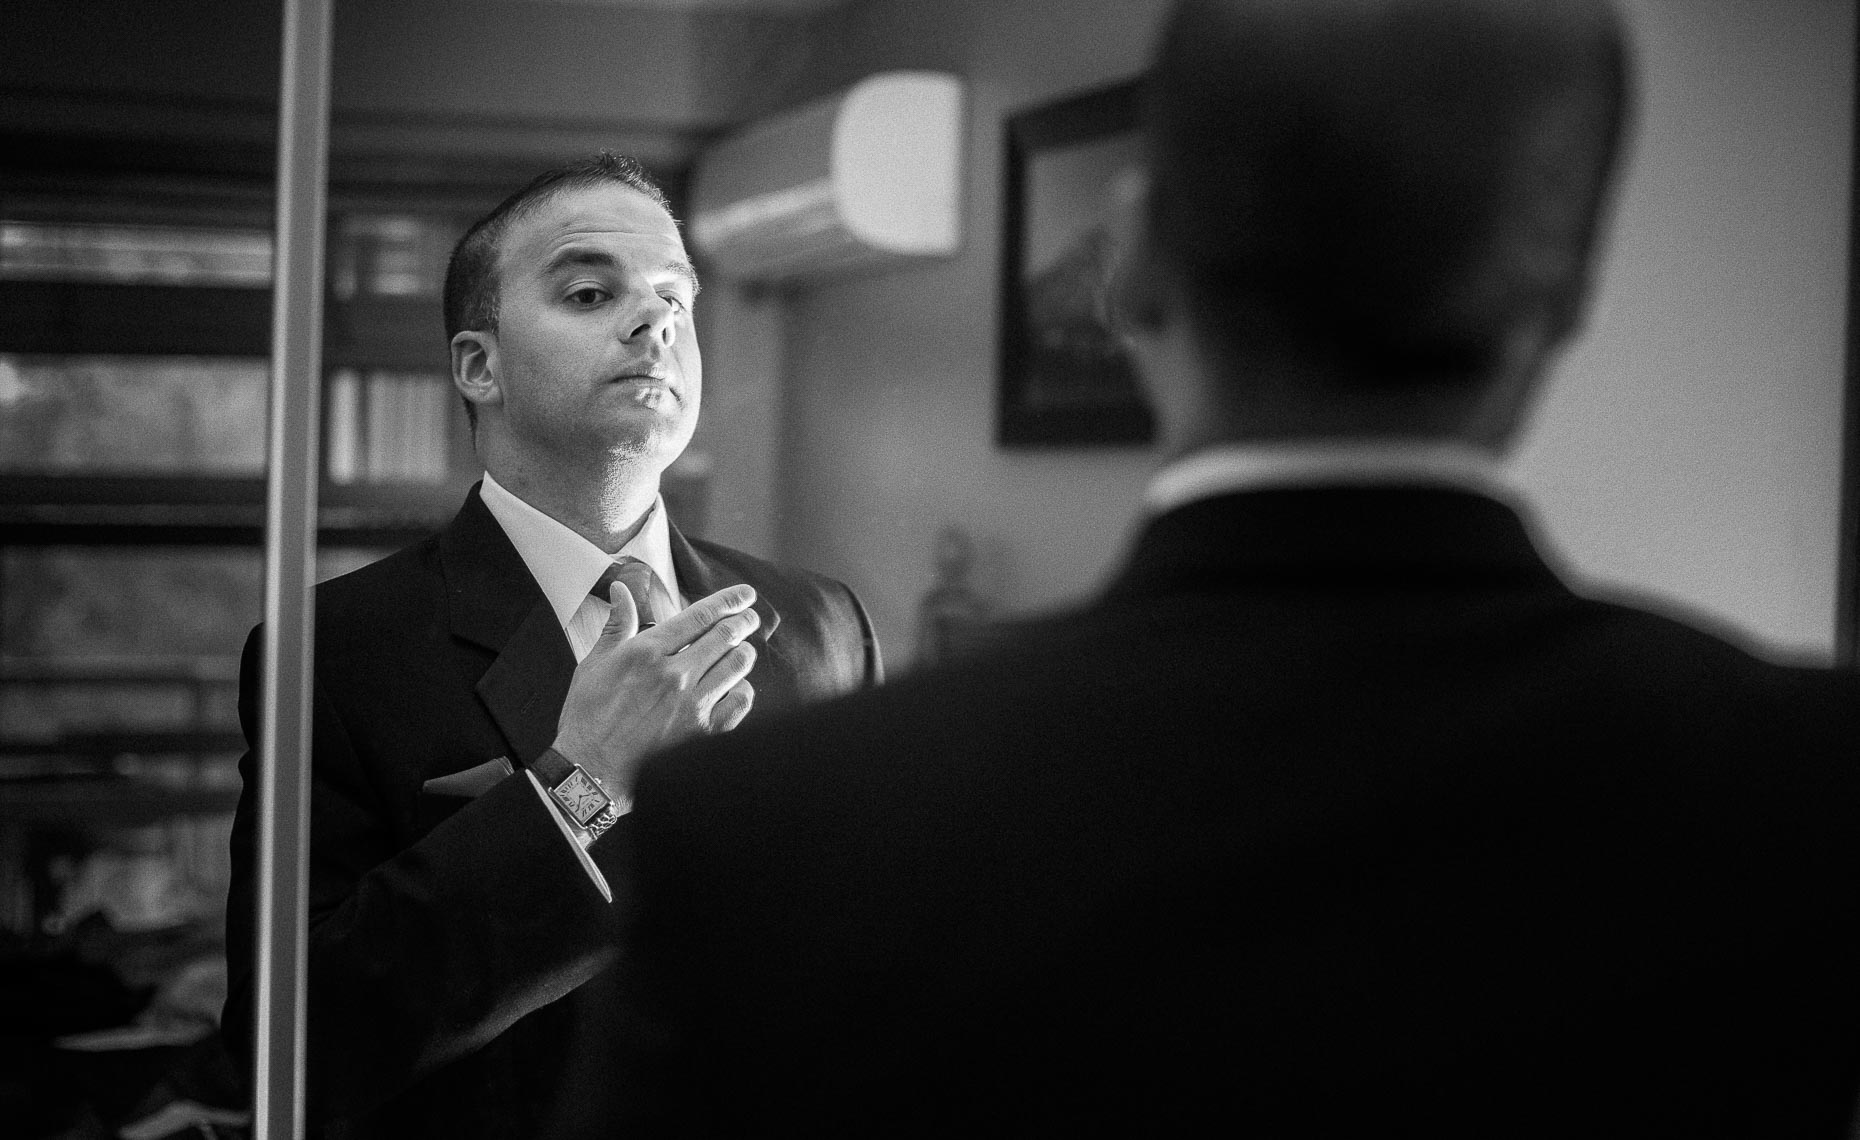 Moody wedding photography of groom getting ready